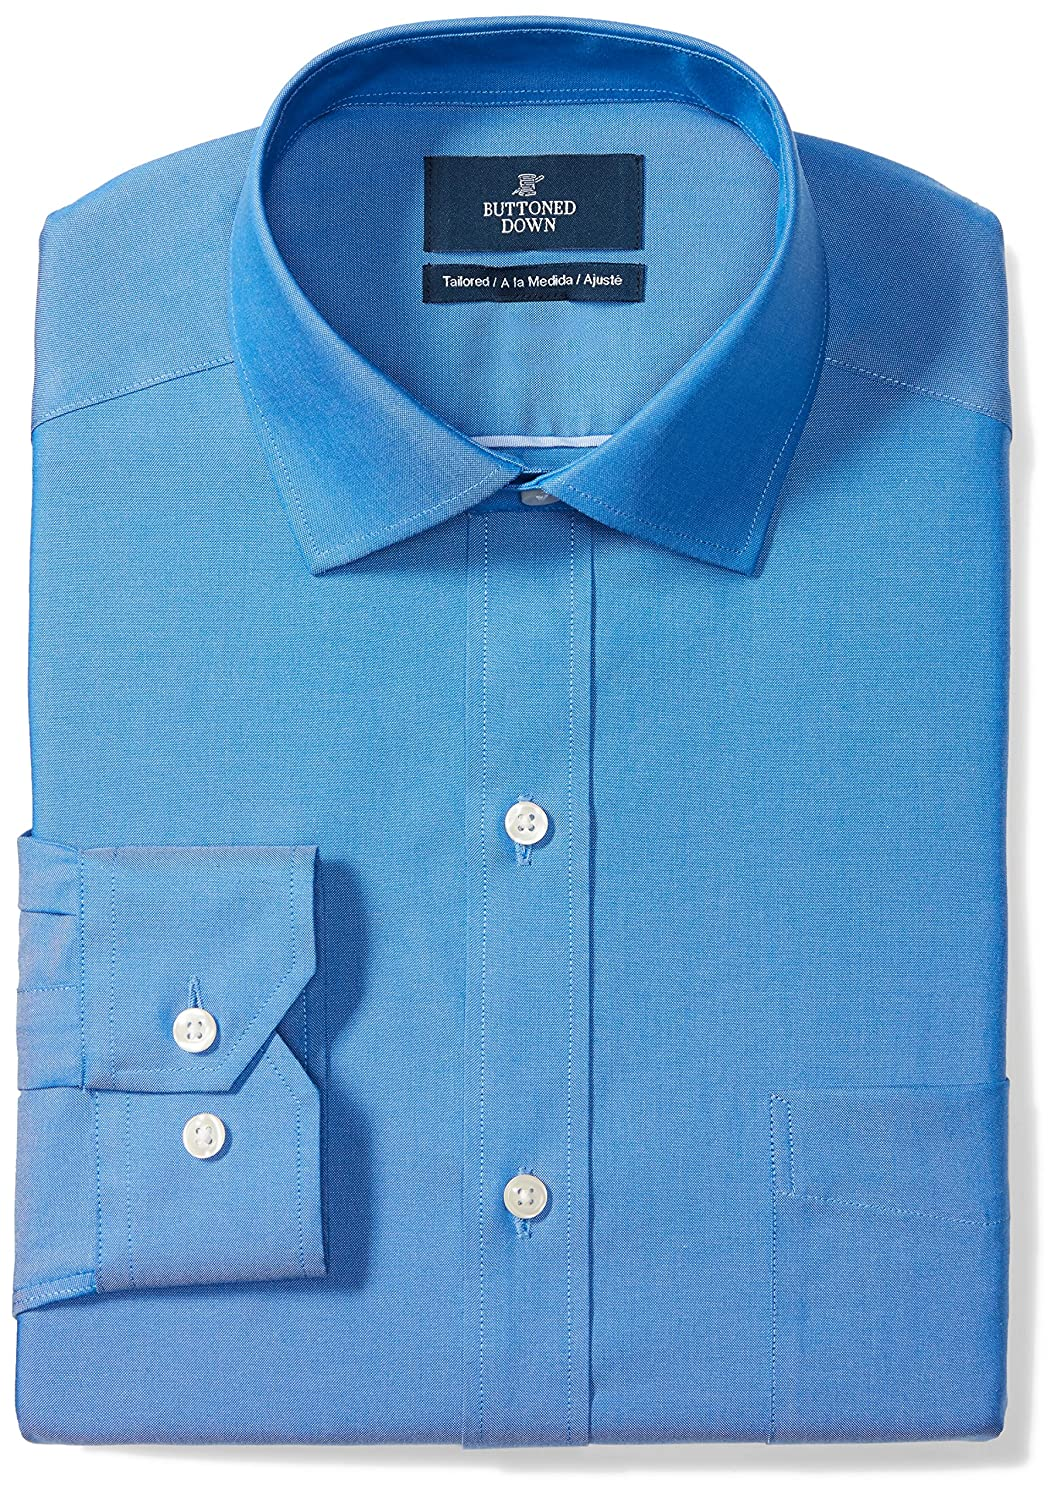 Buttoned Down Men's Tailored Fit Spread-Collar Solid Non-Iron Dress Shirt MBD30027